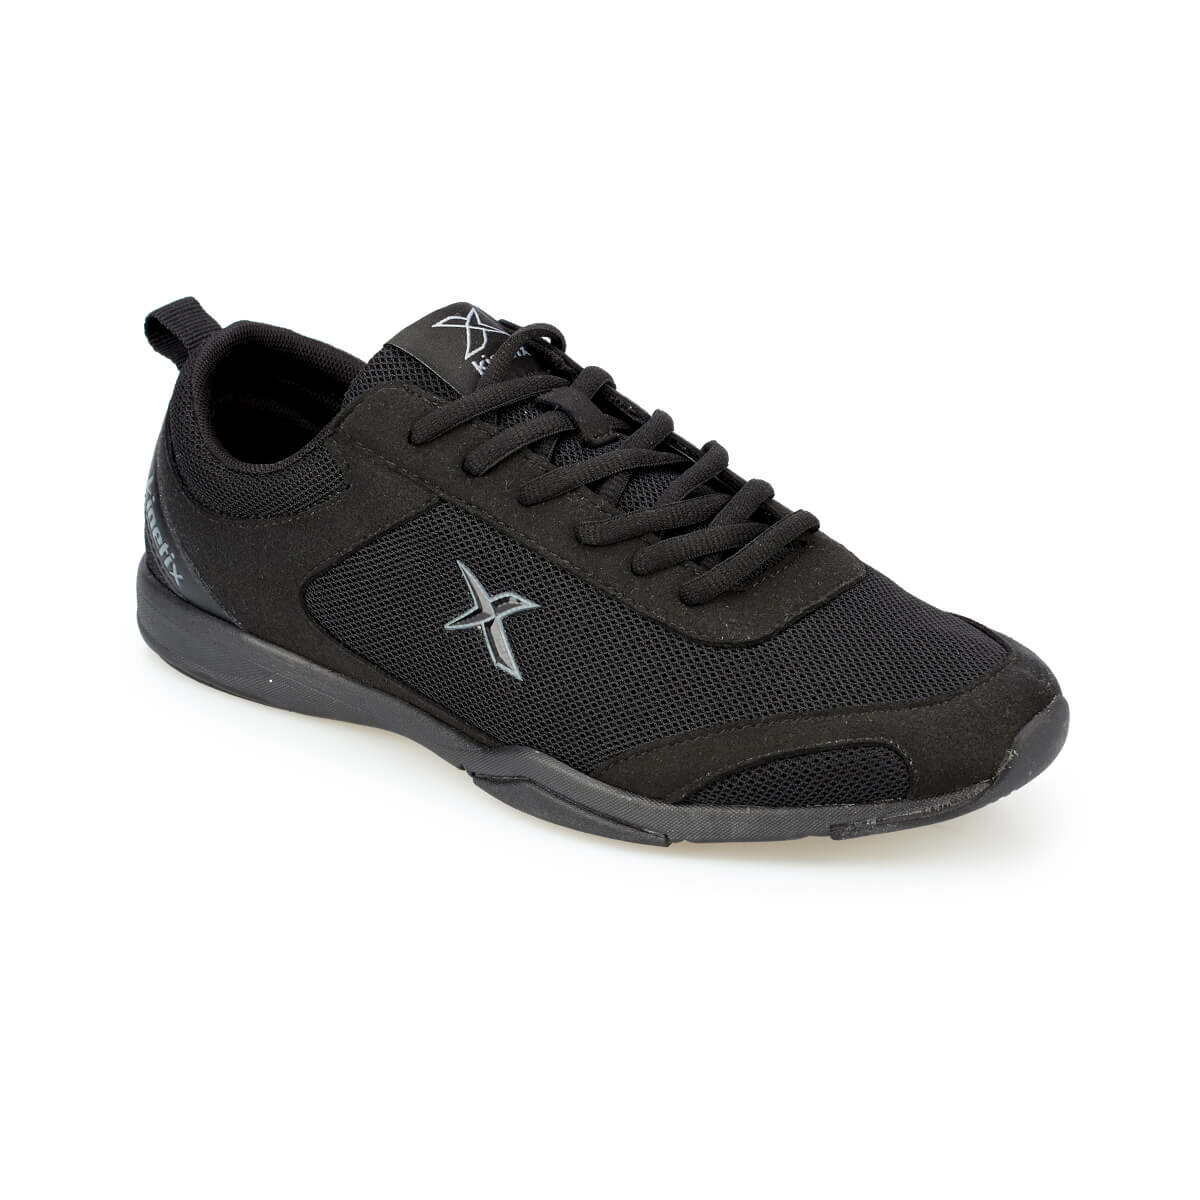 FLO VELEZ Black Men 'S Comfort Shoes KINETIX